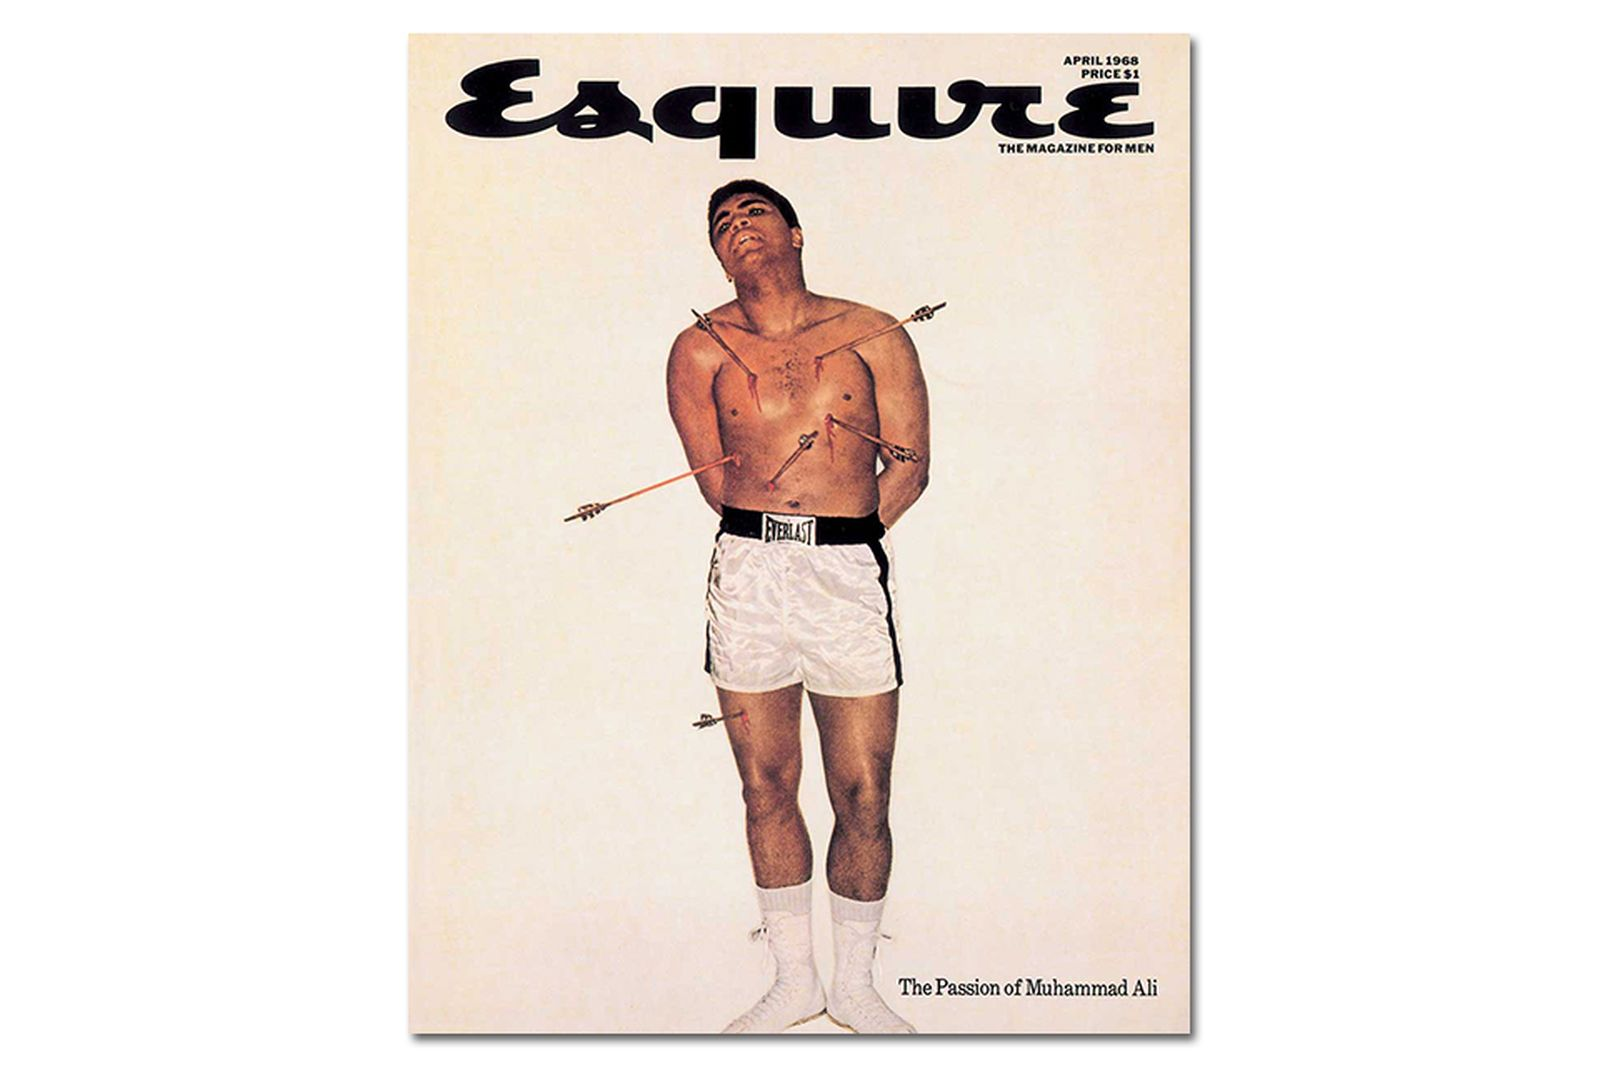 The-20-Most-Memorable-Magazine-Covers-of-All-Time-010